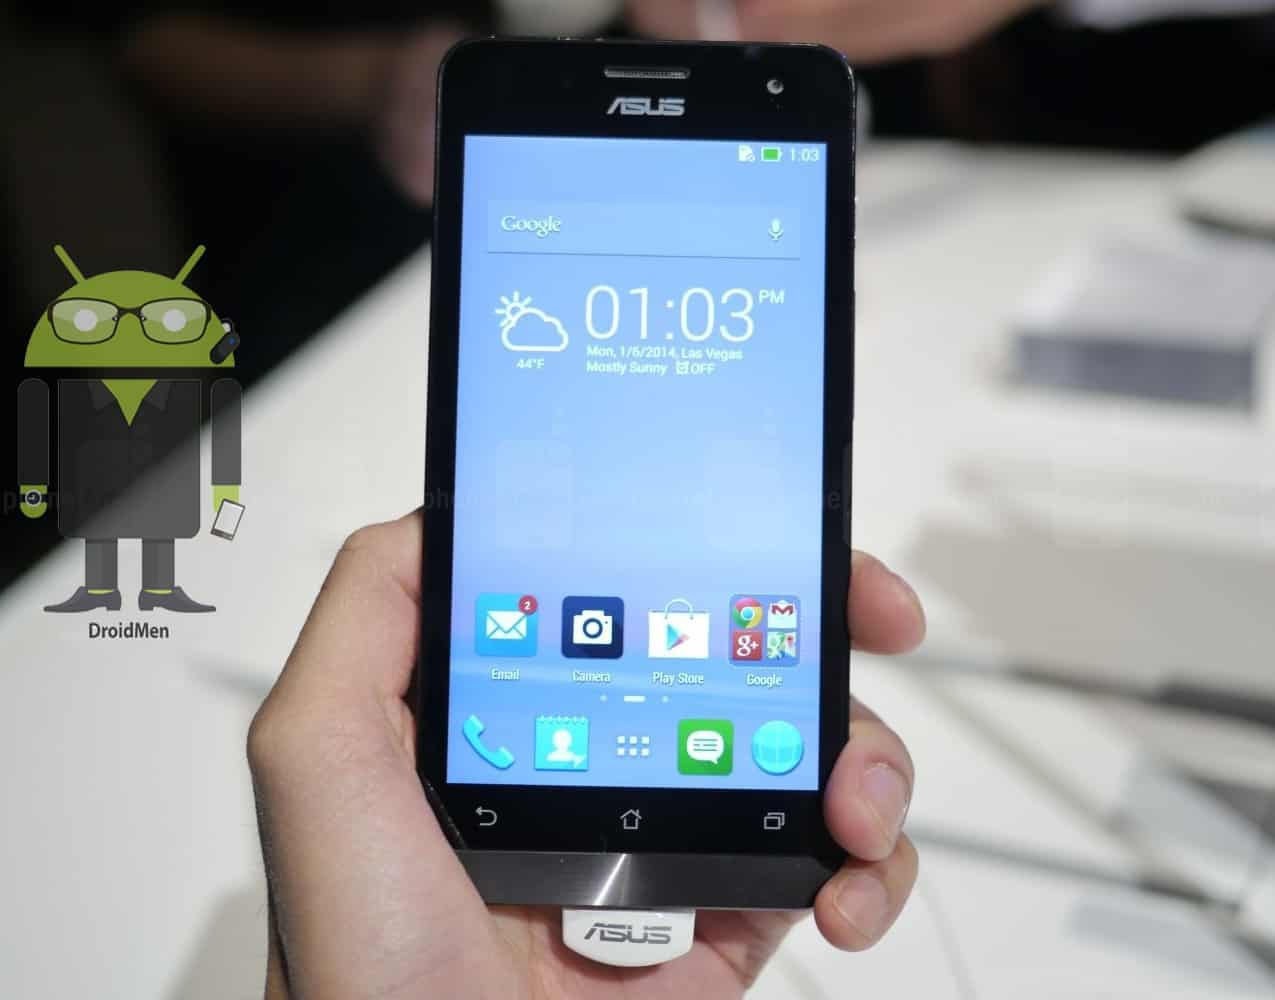 Asus Zenfone 5.5 (Second-Gen Asus Zenfone 5) to be Launched at CES 2015 in January 2015 1